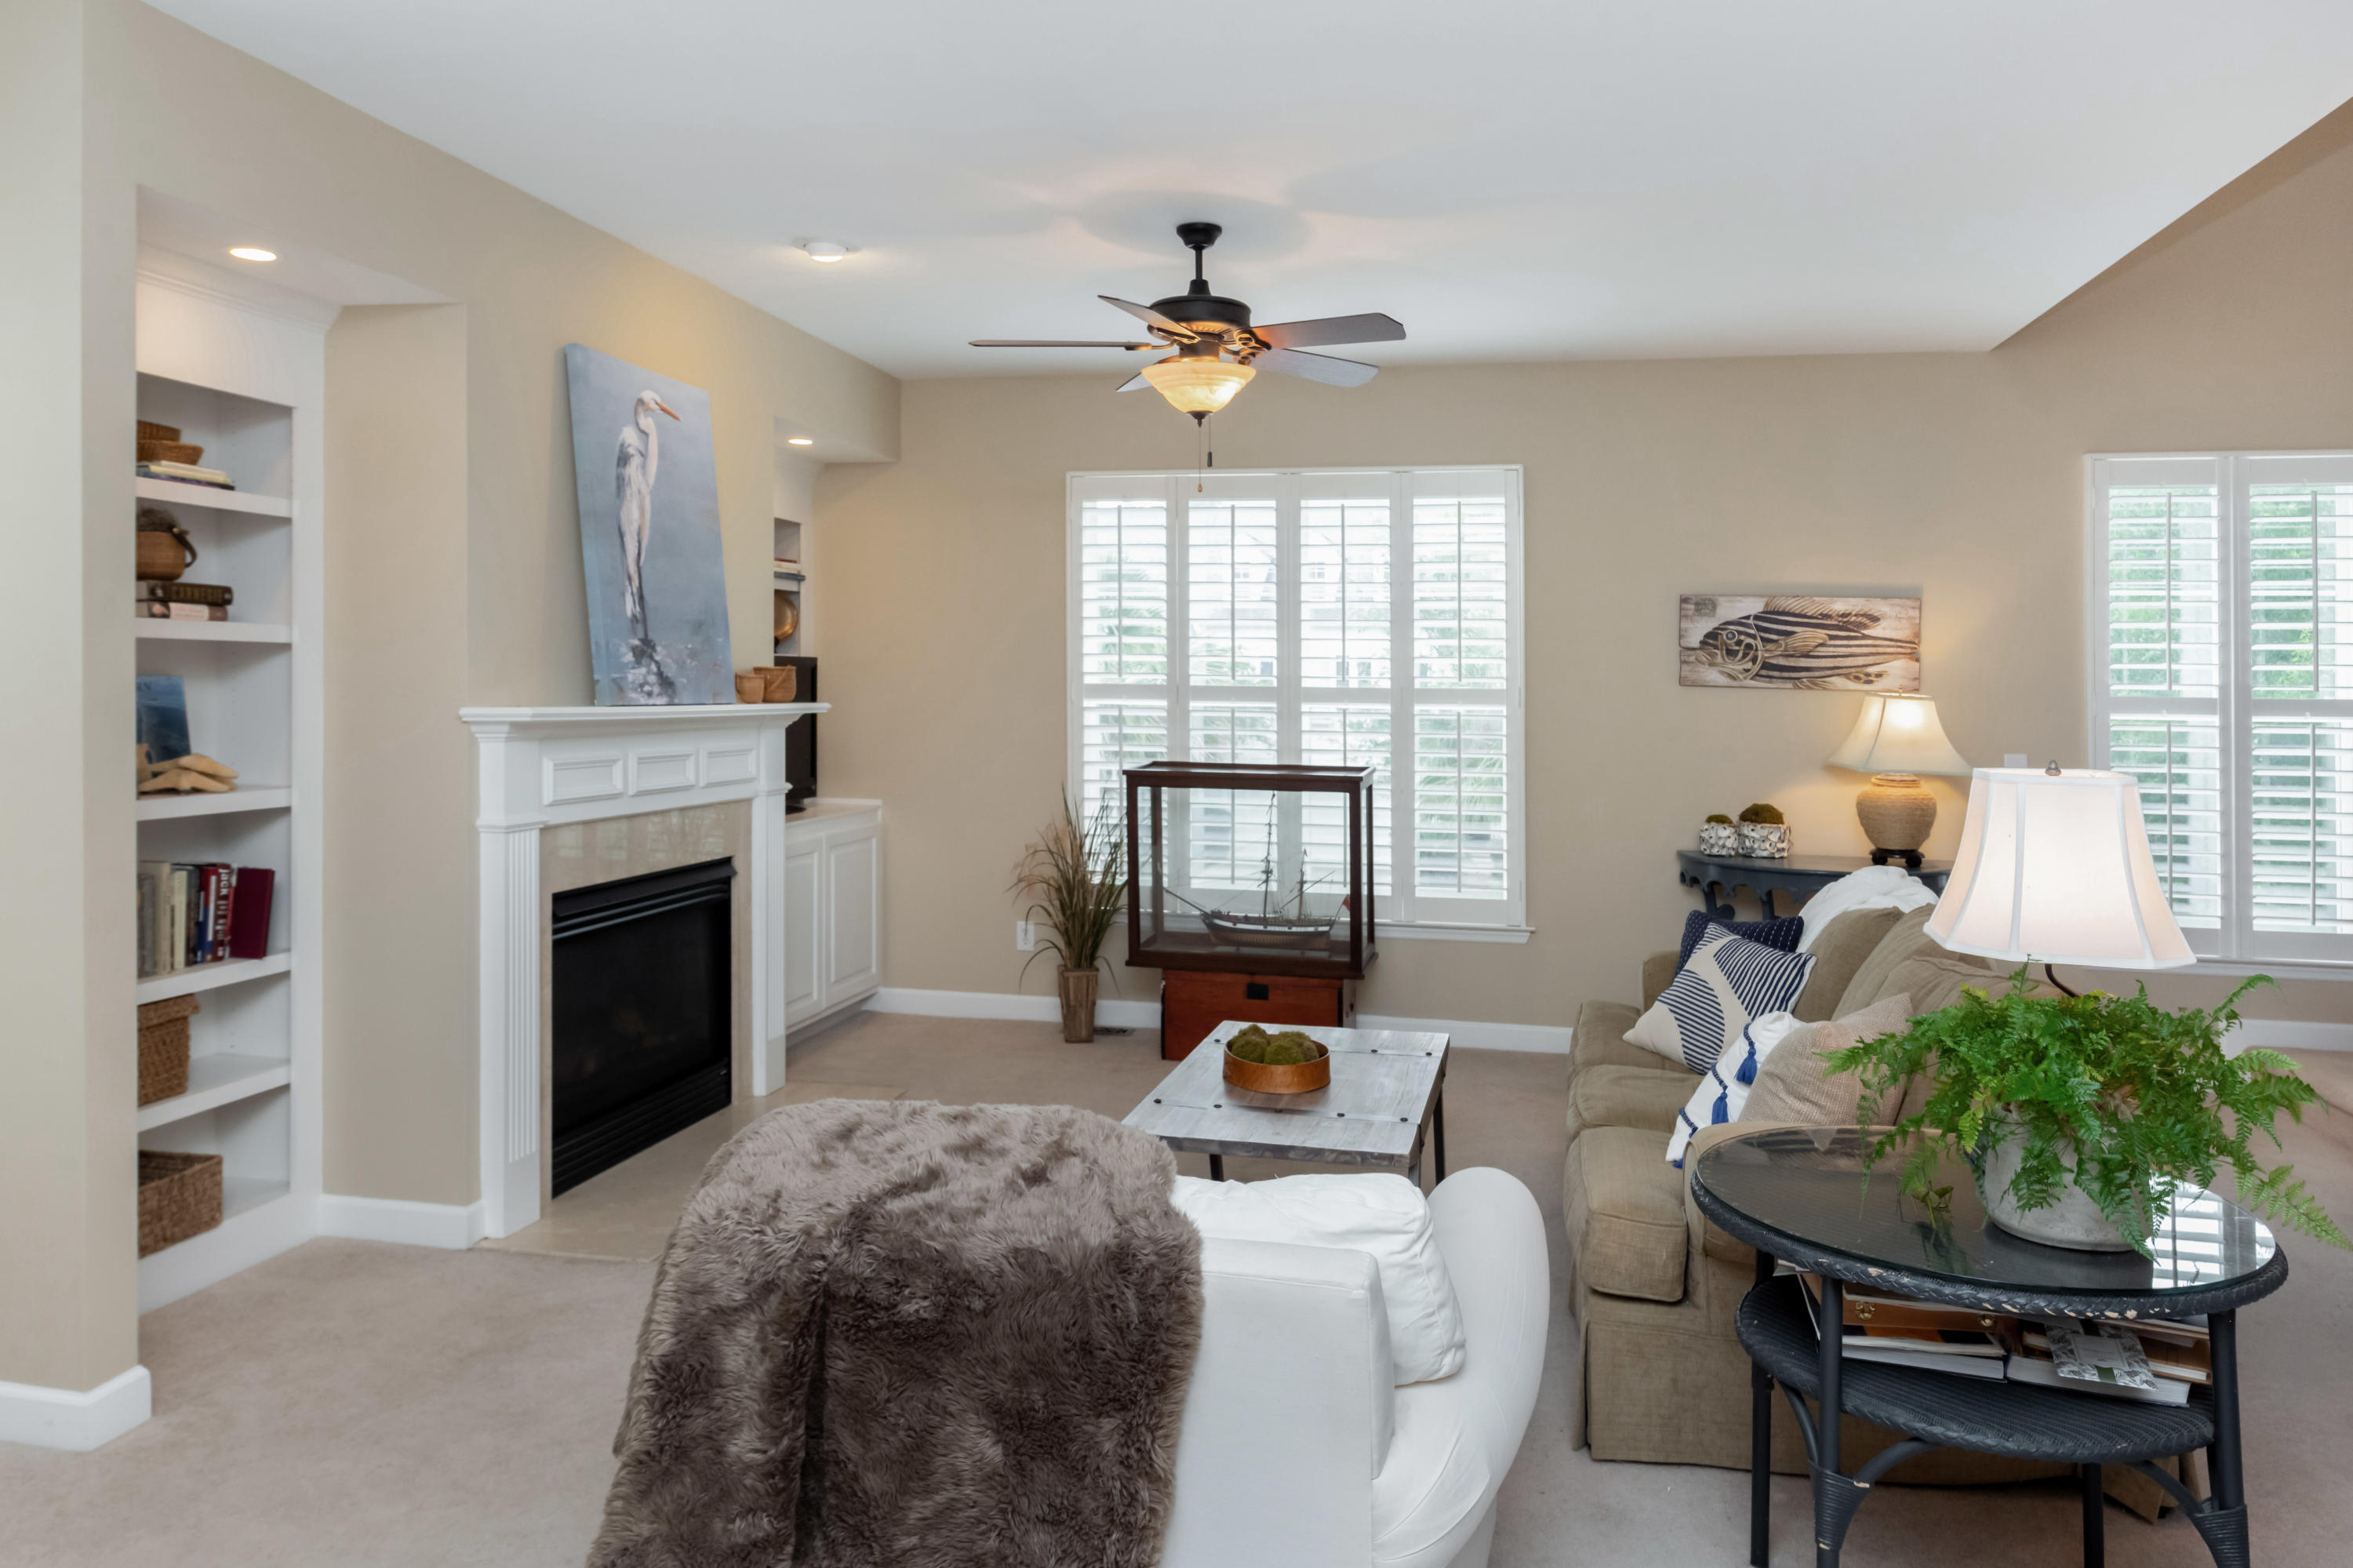 Dunes West Homes For Sale - 252 Fair Sailing, Mount Pleasant, SC - 9